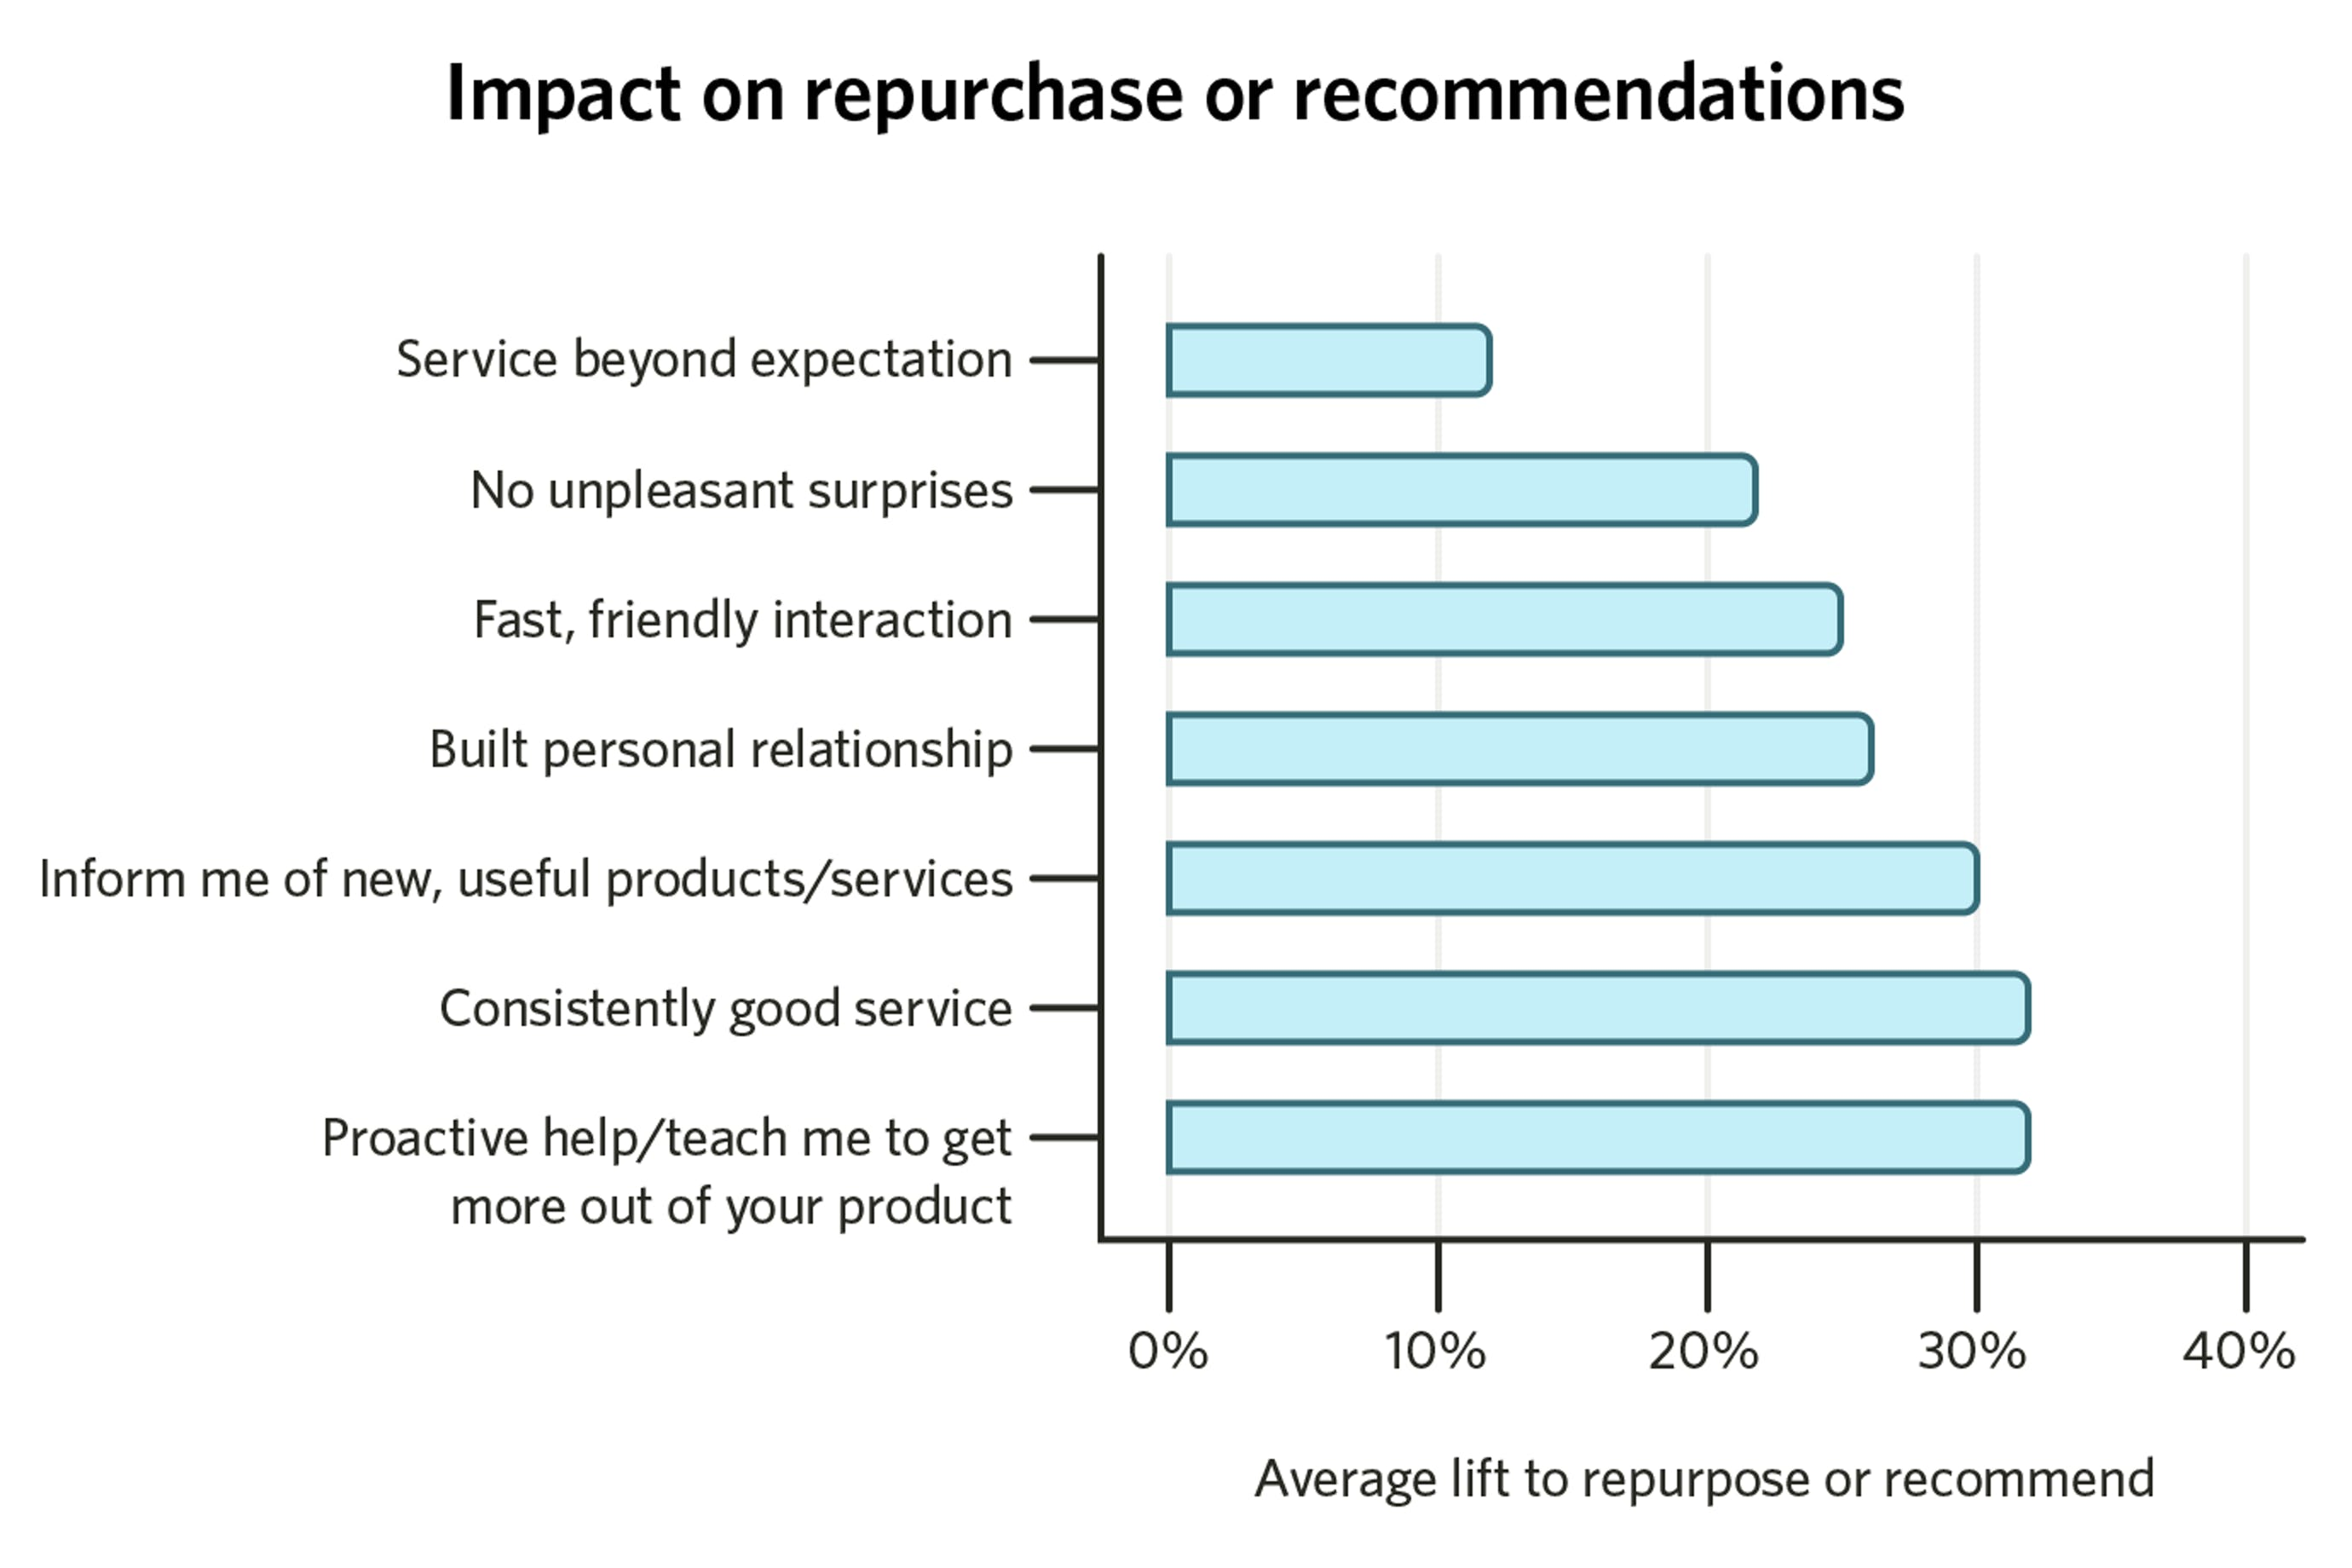 impact on repurchase or recommendations